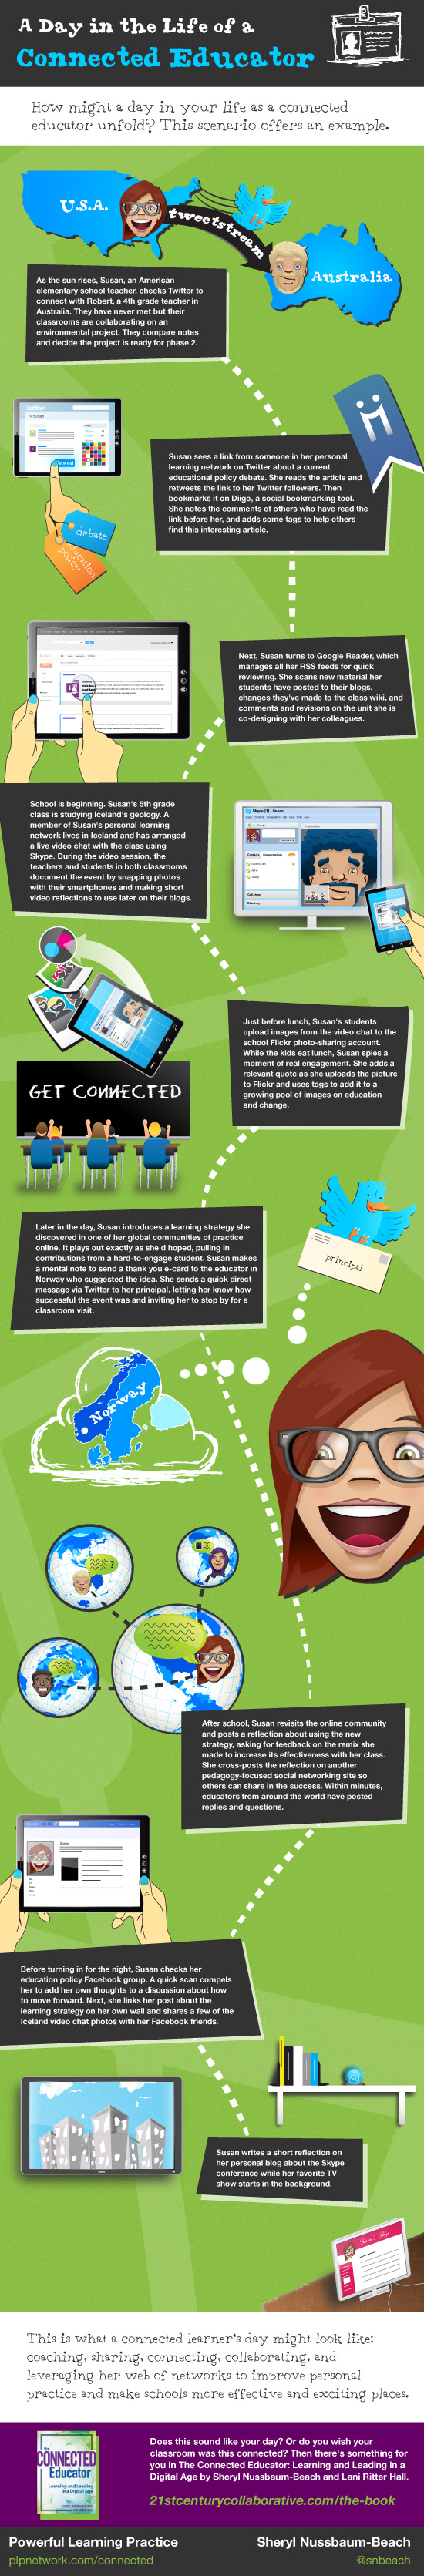 Infographic showing a day in the life of a connected educator - teachers using social media